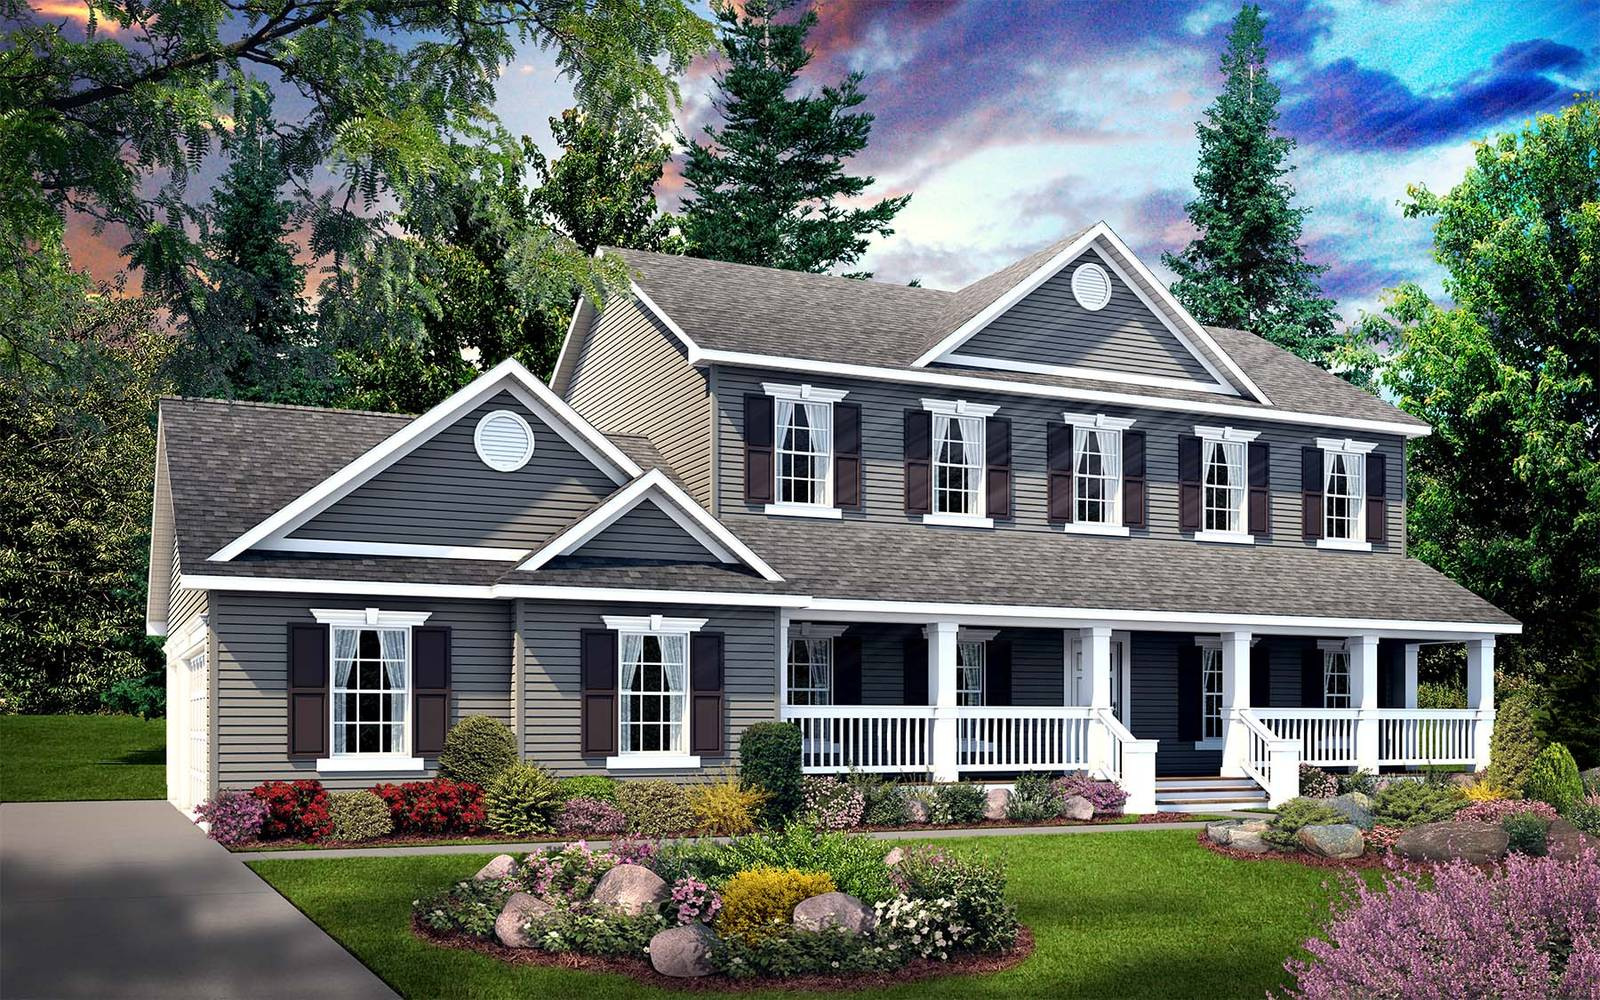 All%20American%20Homes-Huntington-1600x1000.jpg